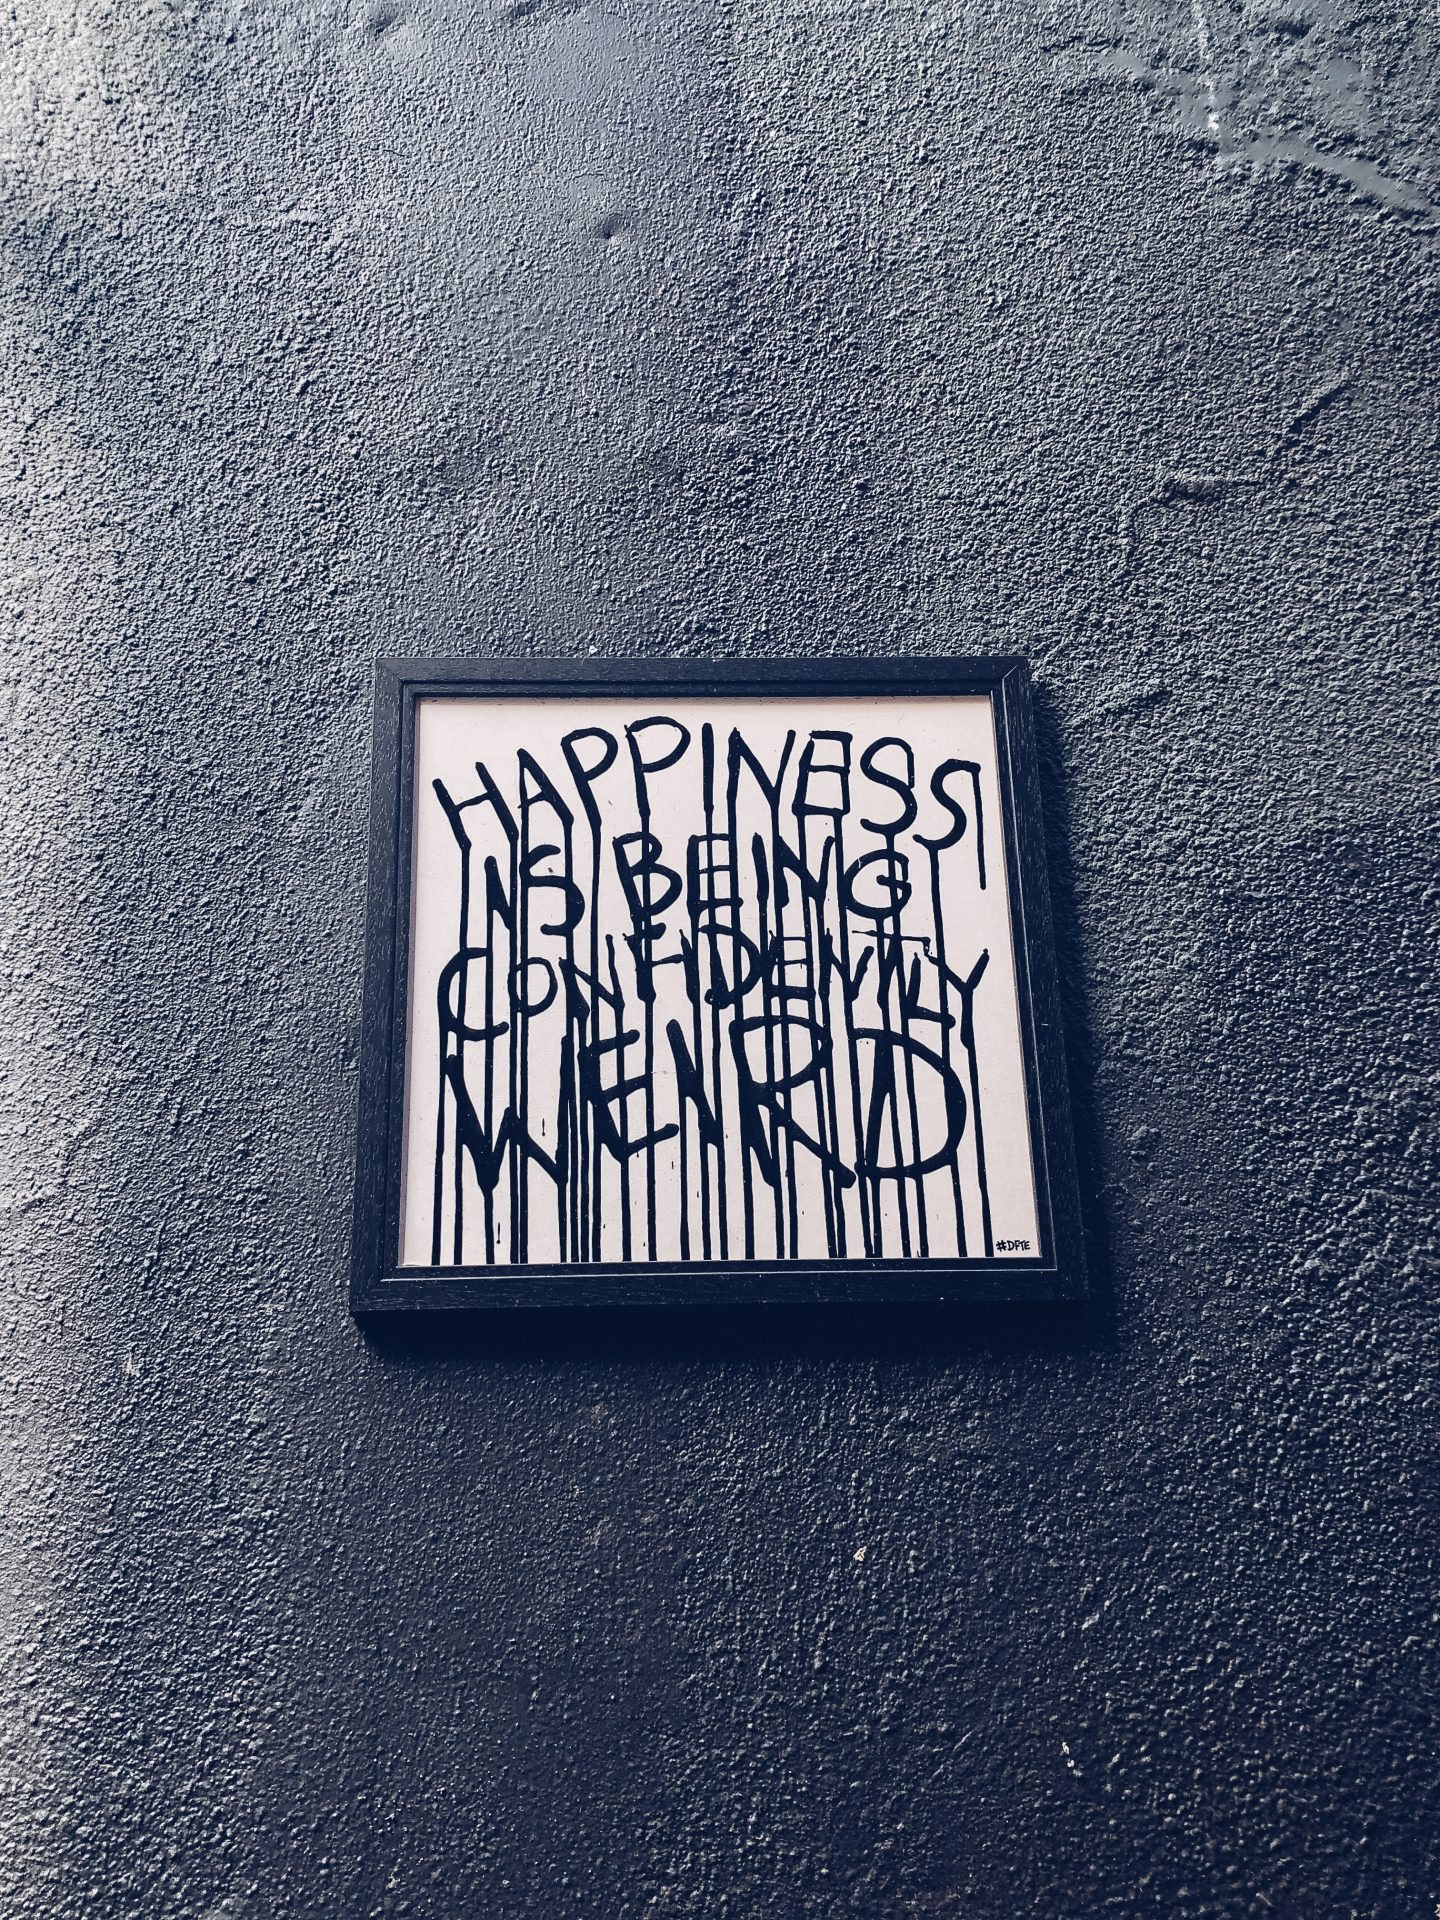 a white canvas in black frame on a black wall. the canvas has the words 'happiness is being confidently weird' painted on it